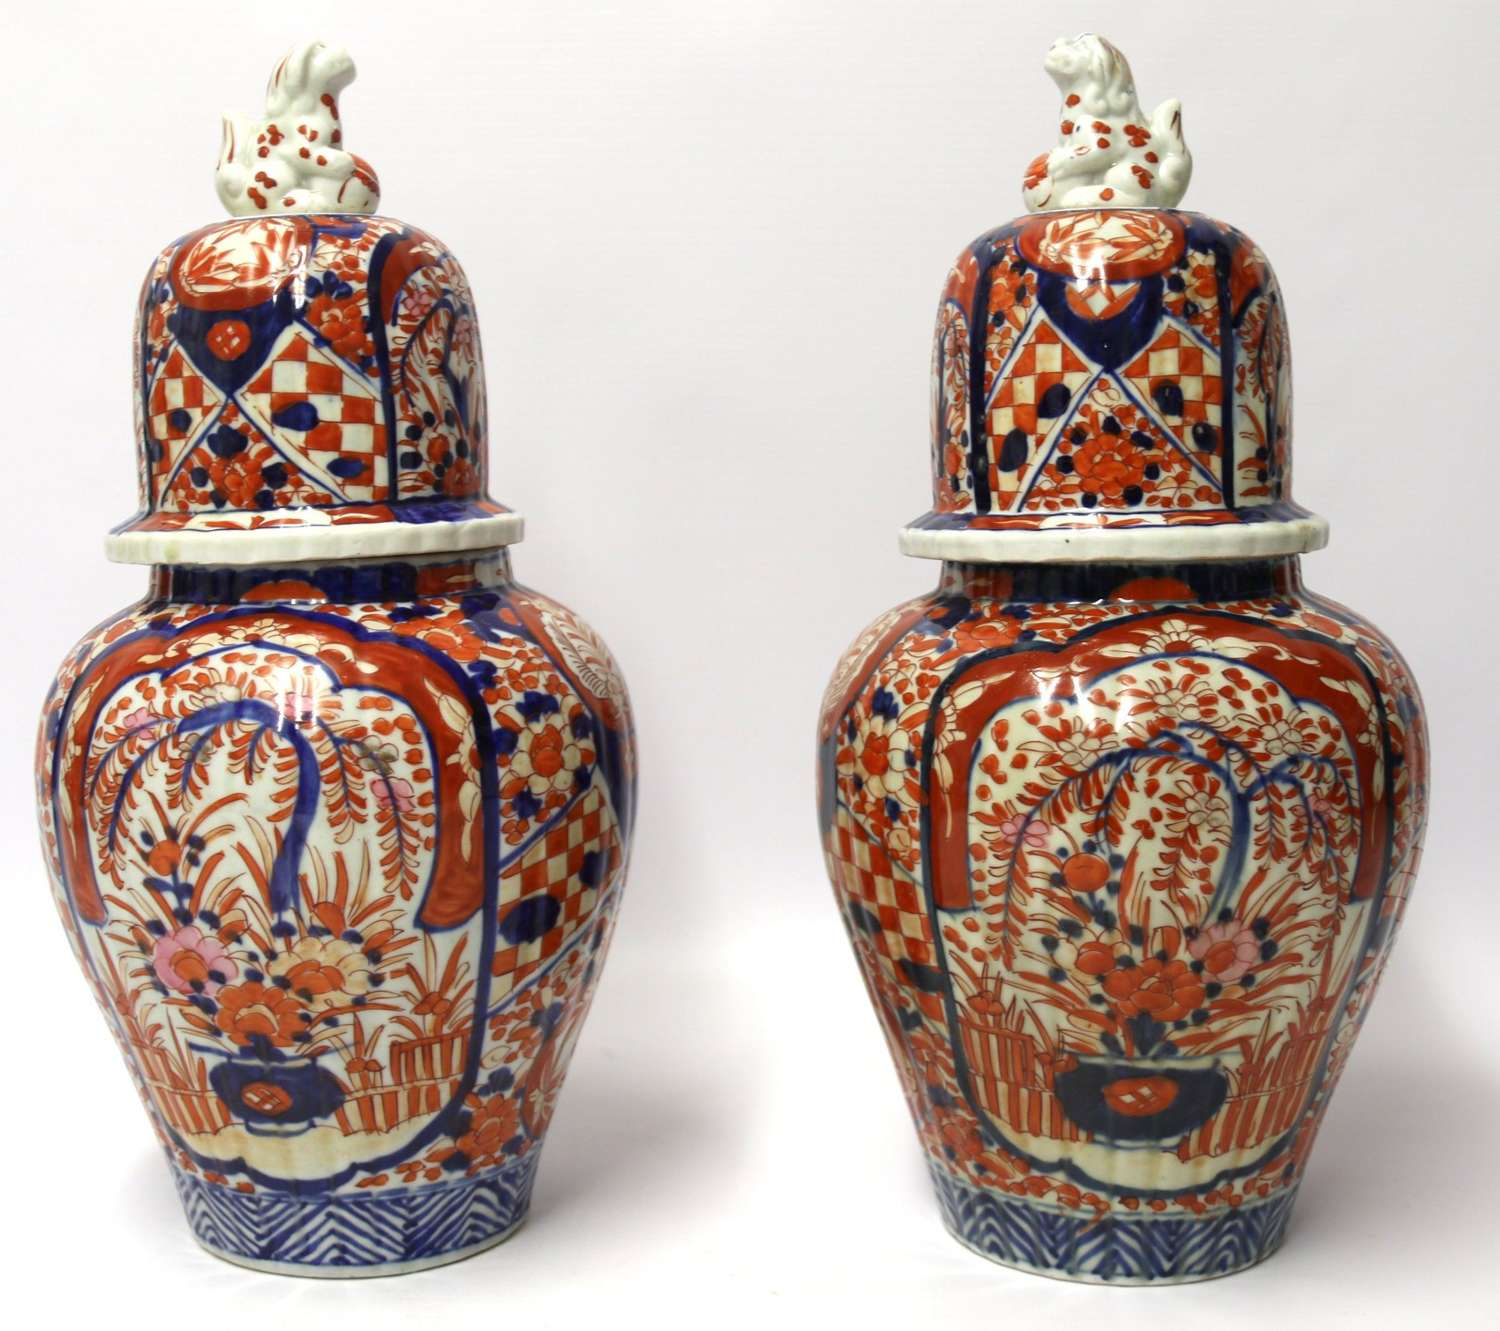 A Large Pair Of Japanese Imari Ginger Jars With Covers